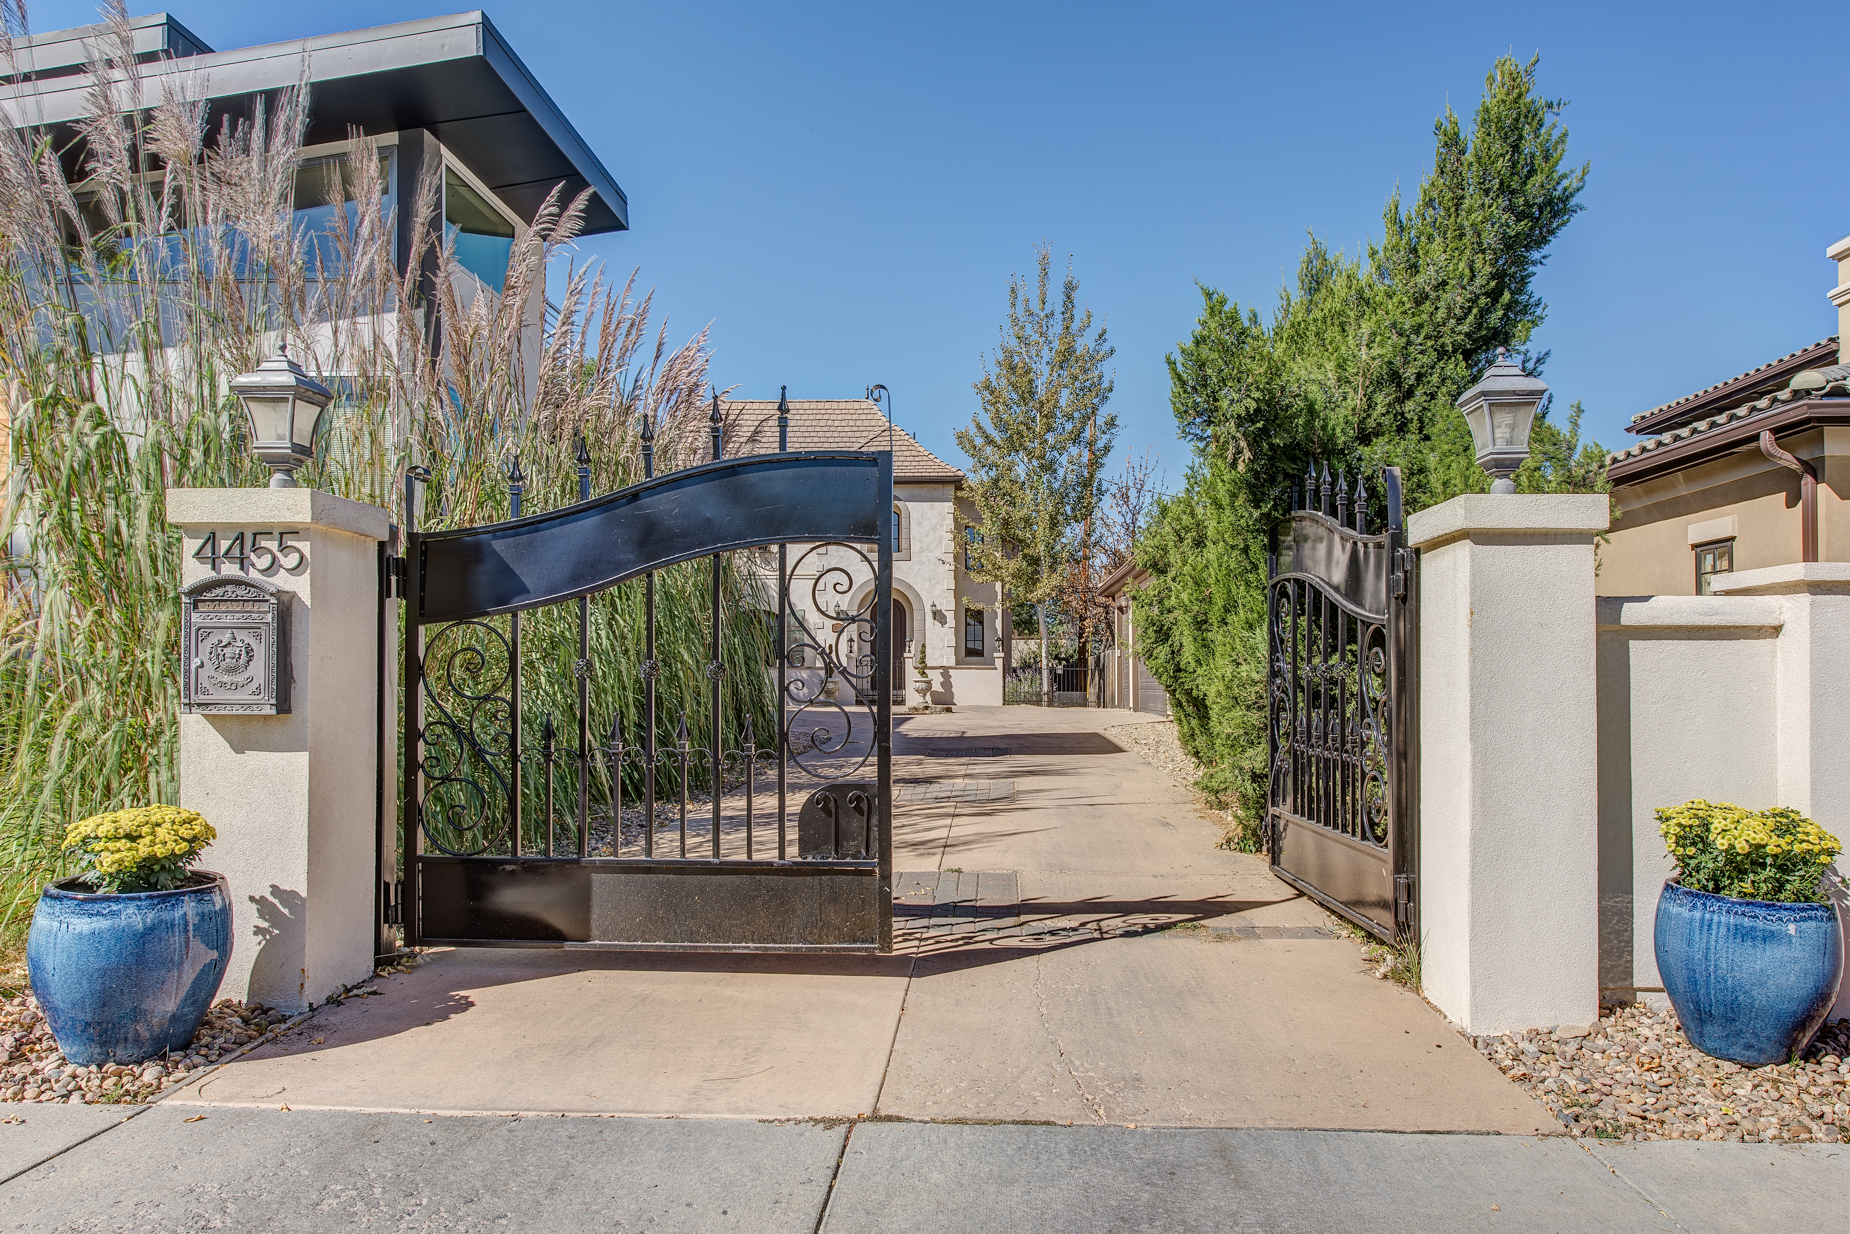 Single Family Home for Sale at Old World Charm with Modern Conveniences 4455 Irving Street Berkeley, Denver, Colorado, 80211 United States